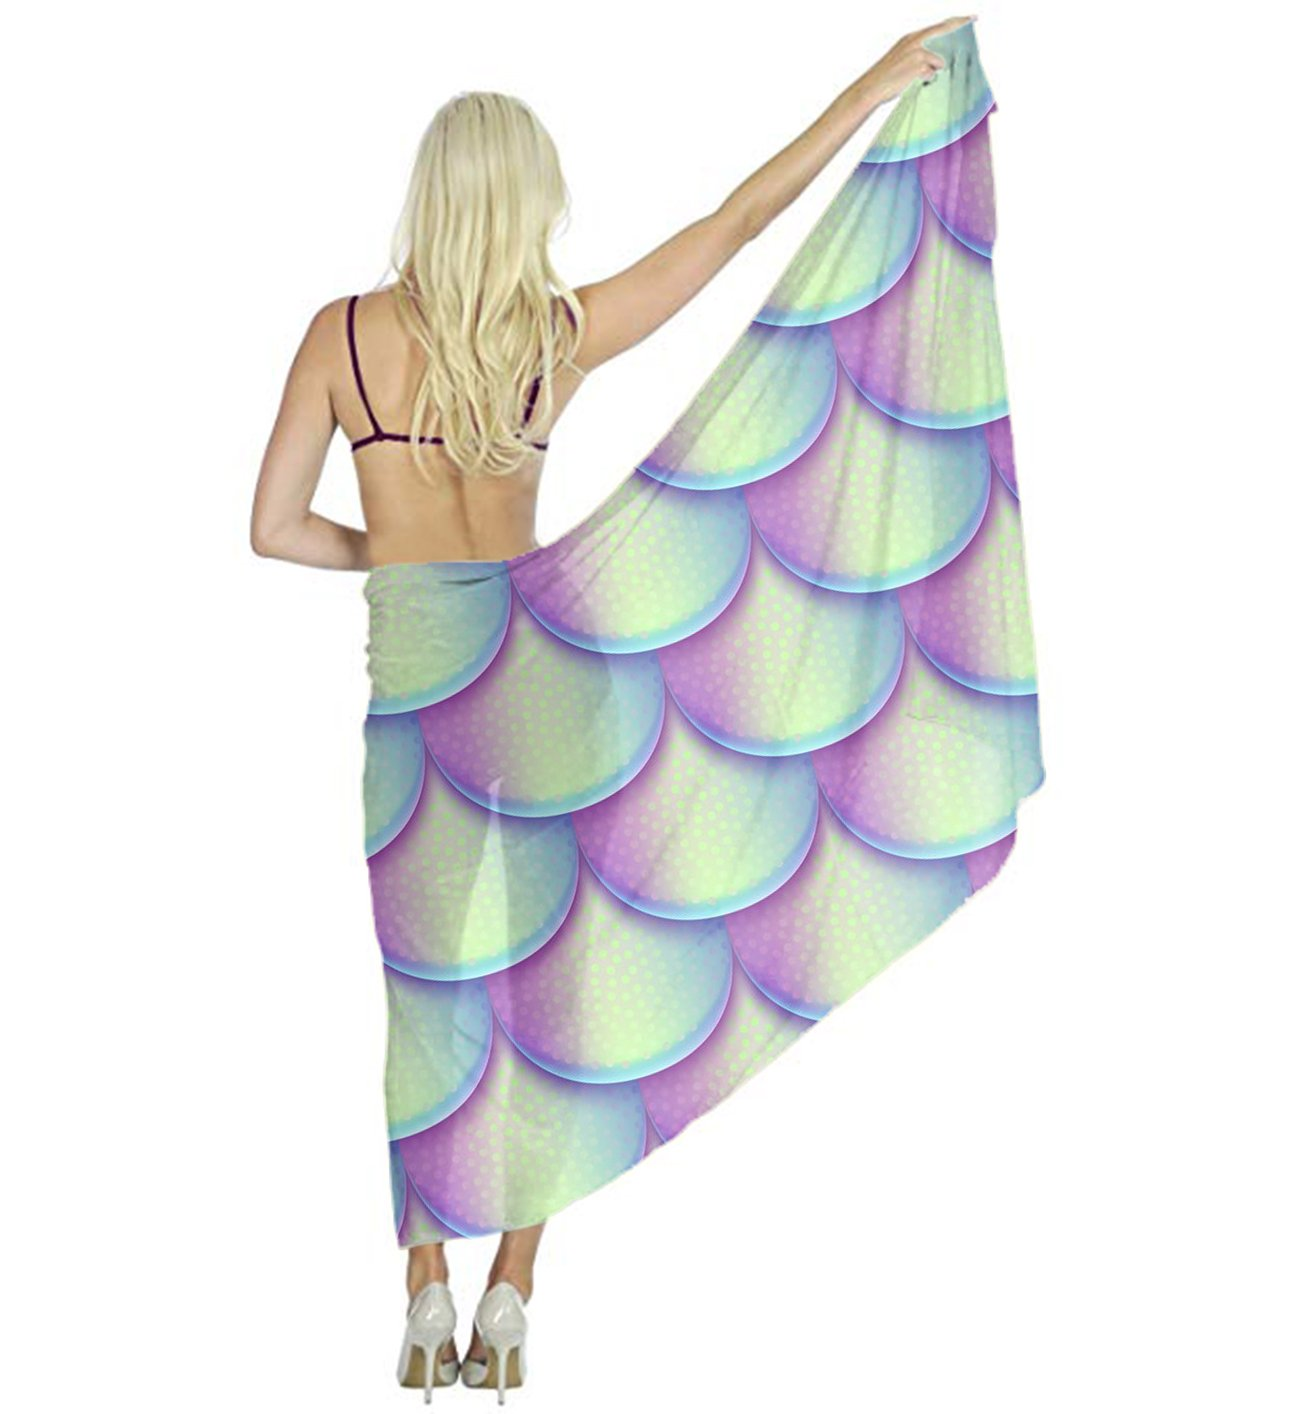 Mermaid Fish Scales Scarf for Evening Dresses, Wedding Shawl Wrap for Women